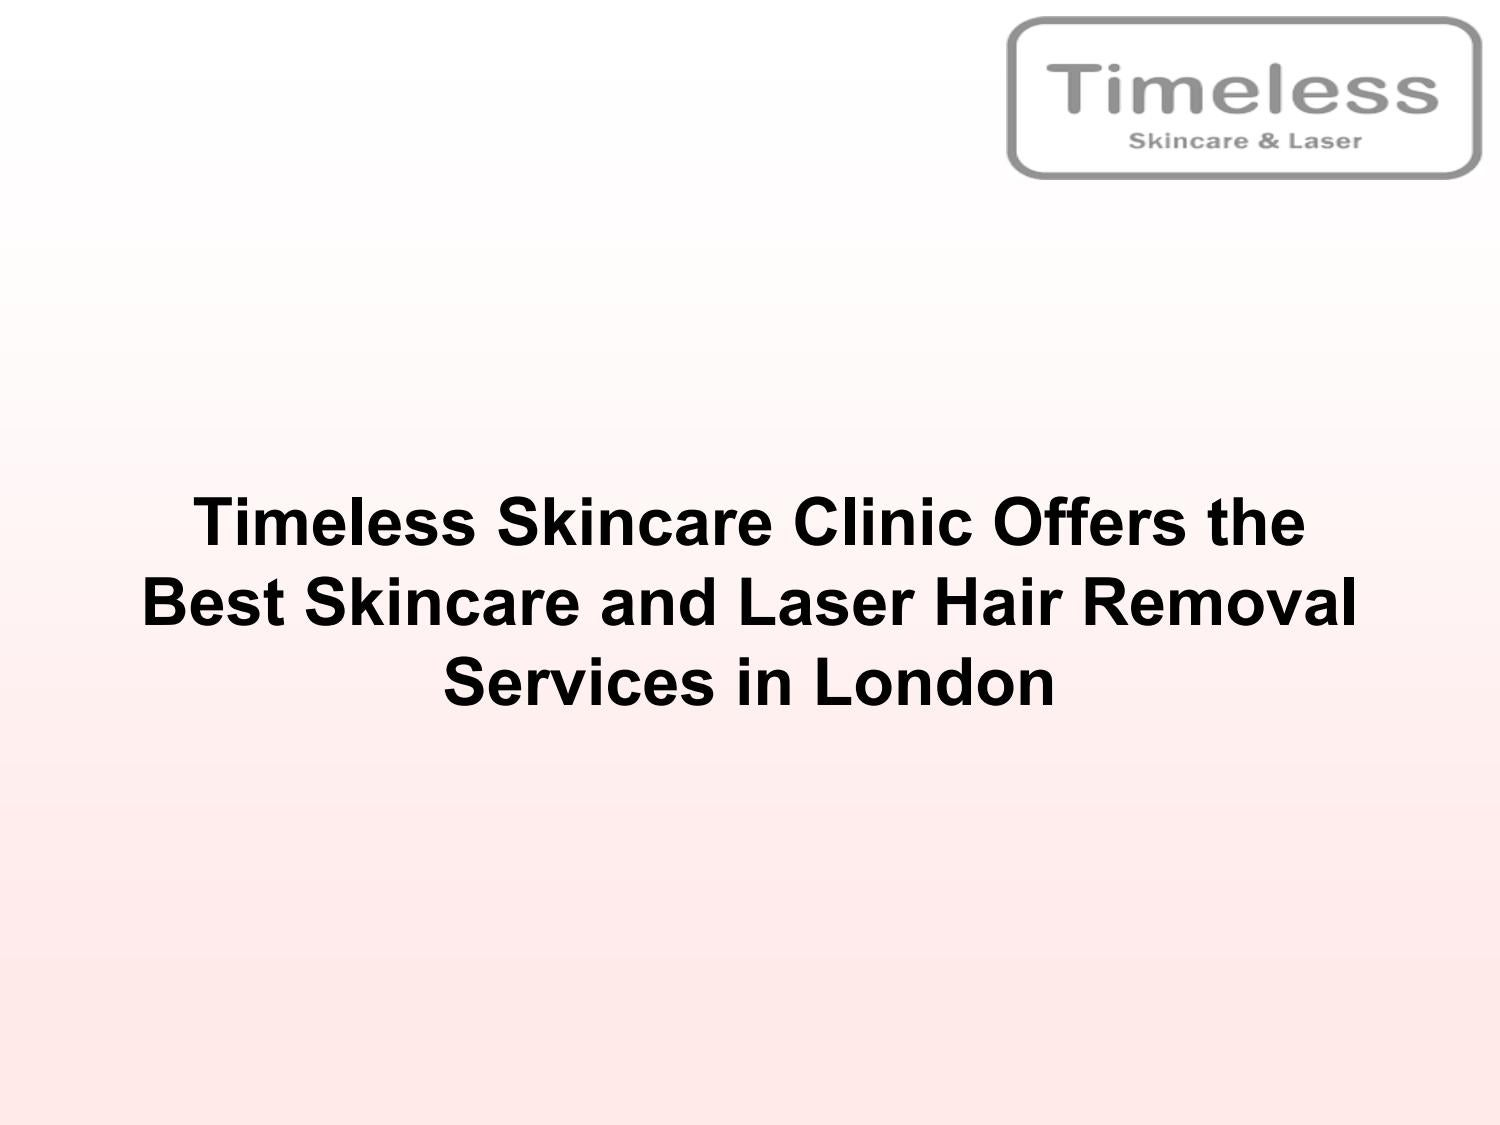 Timeless Skincare Clinic Offers The Best Skincare And Laser Hair Removal Services In London By